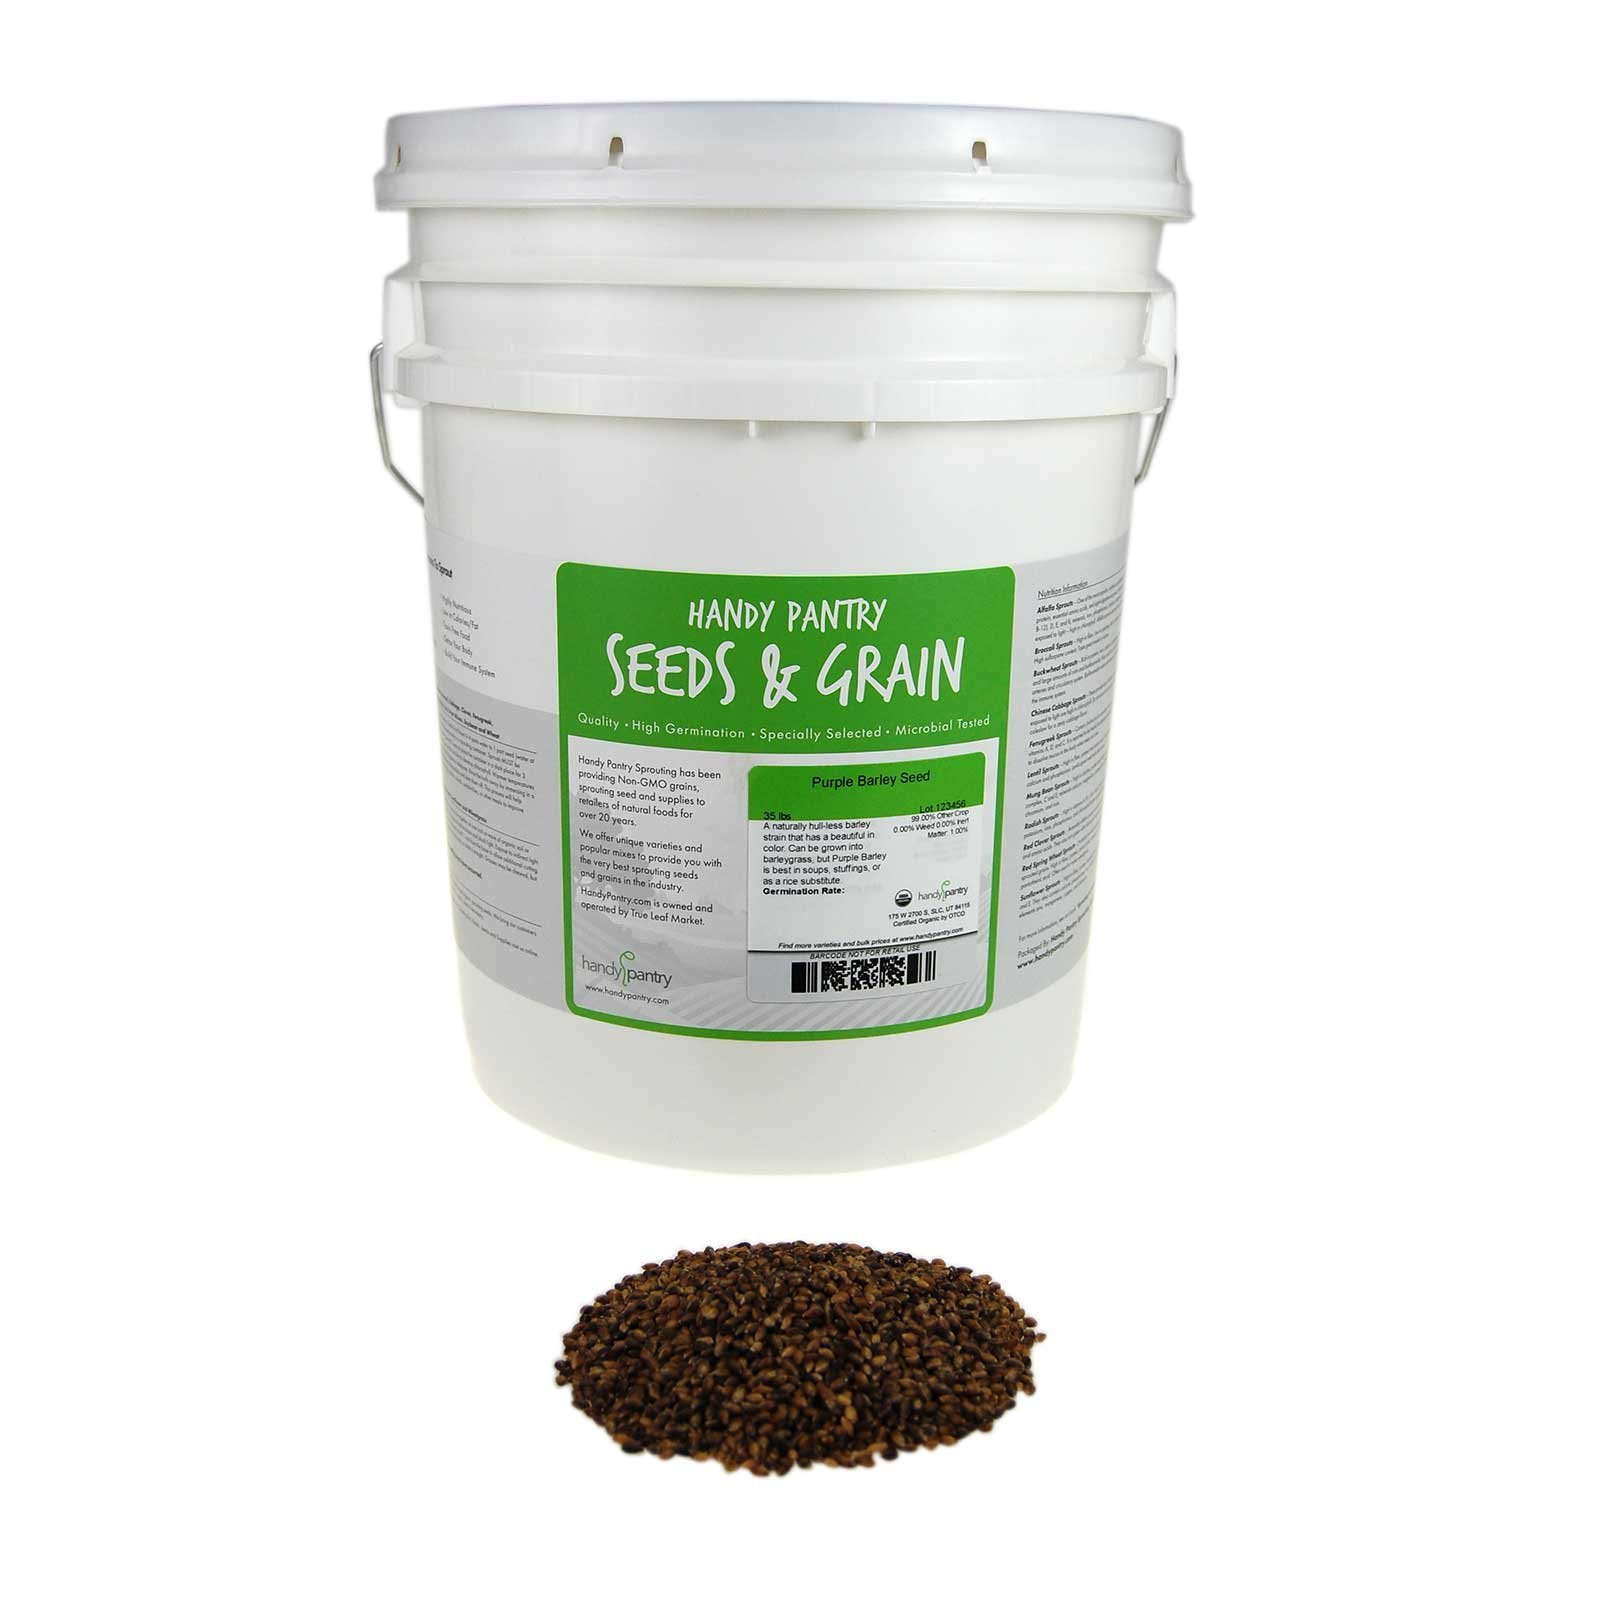 Purple Barley Seeds - Certified Organic - 35 Lb Bucket - Handy Pantry Brand - Also Called Black Barley - No Hull - For Barleygrass, Grind for Flour, Food Storage, Soups & More